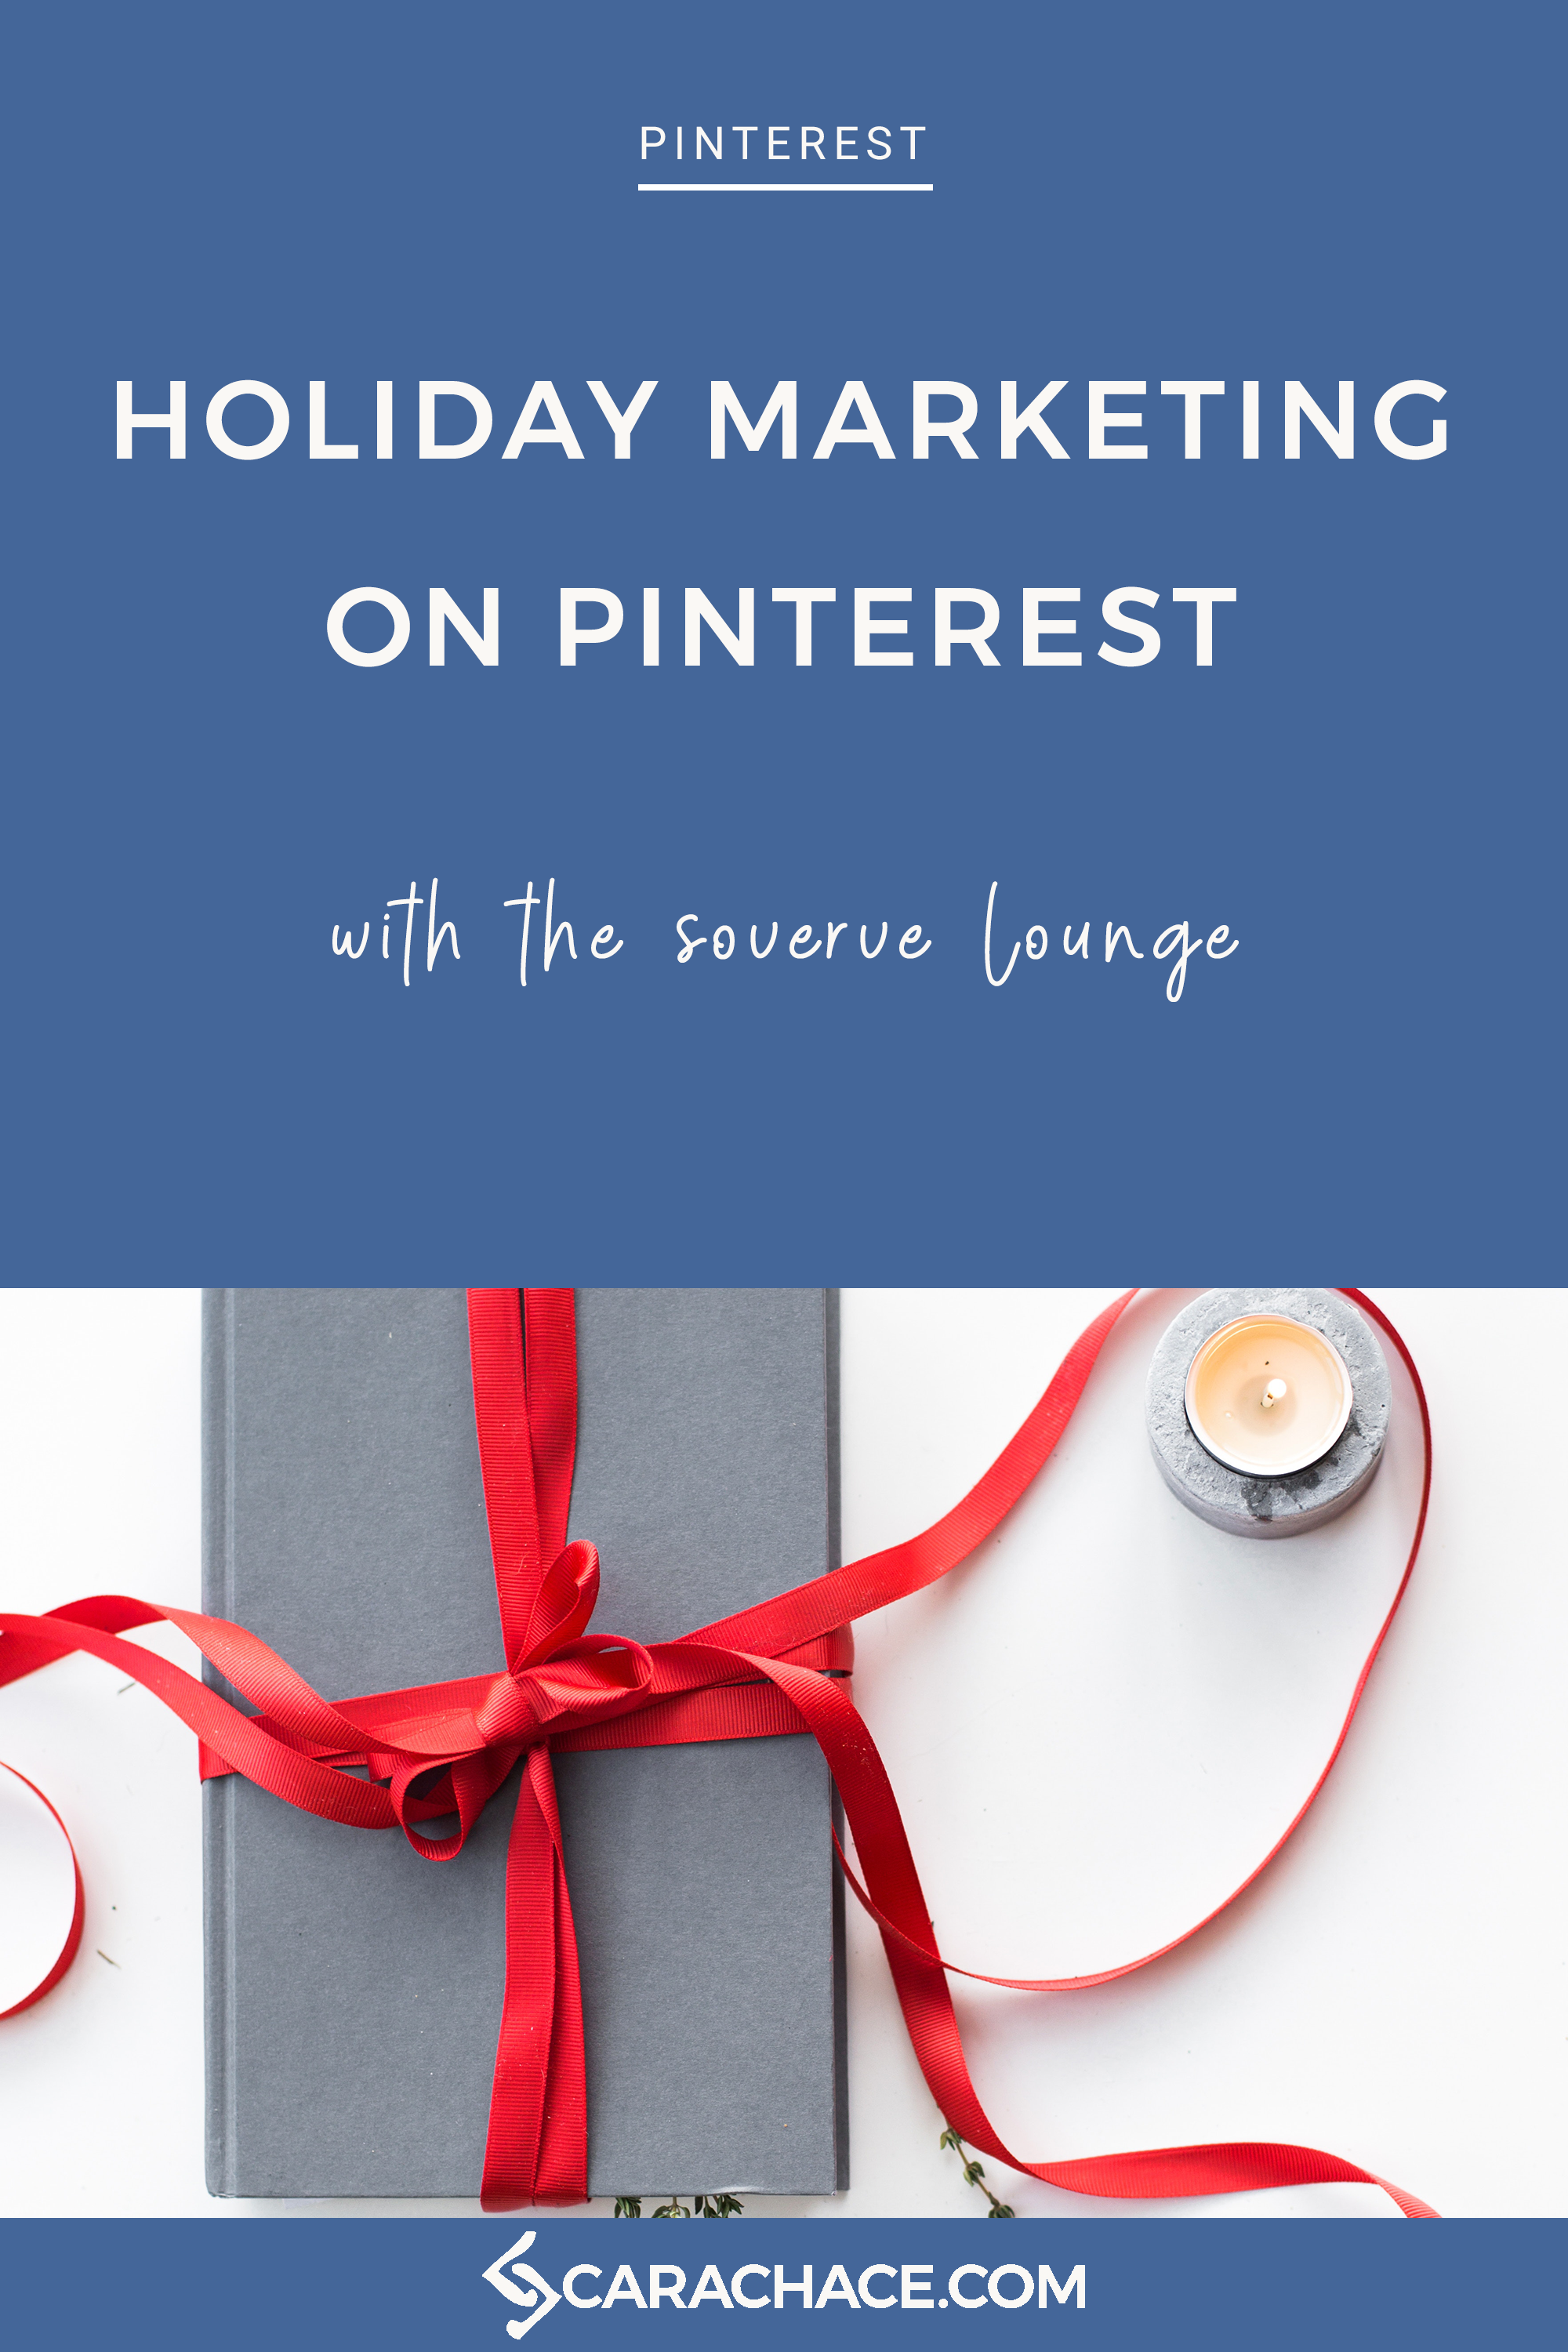 Holiday Marketing on Pinterest SoVerve Blog Post Thumbnail.png